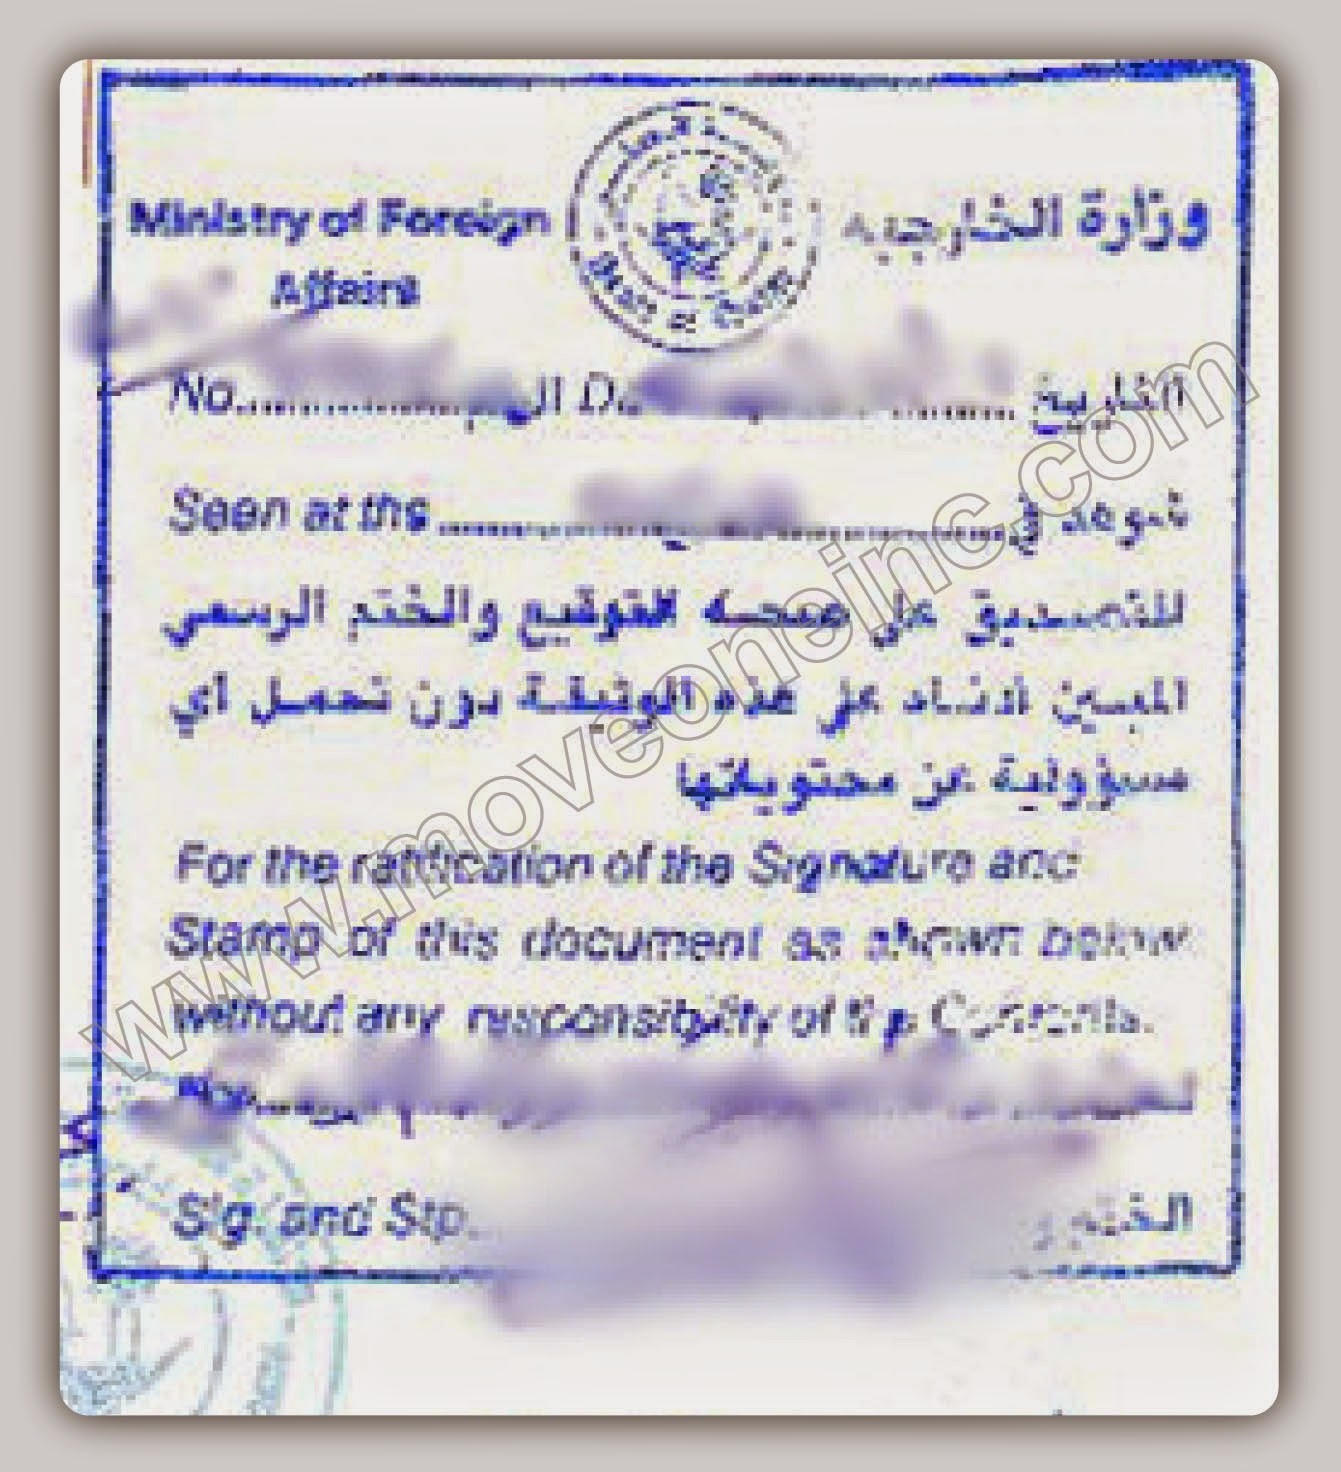 a description of a letter from saudi arabia A detailed salary worksheet is provided with the offer letter this conditional offer is contingent upon meeting the specified conditions, which are required before you can be employed by saudi aramco in saudi arabia relocation relocation.